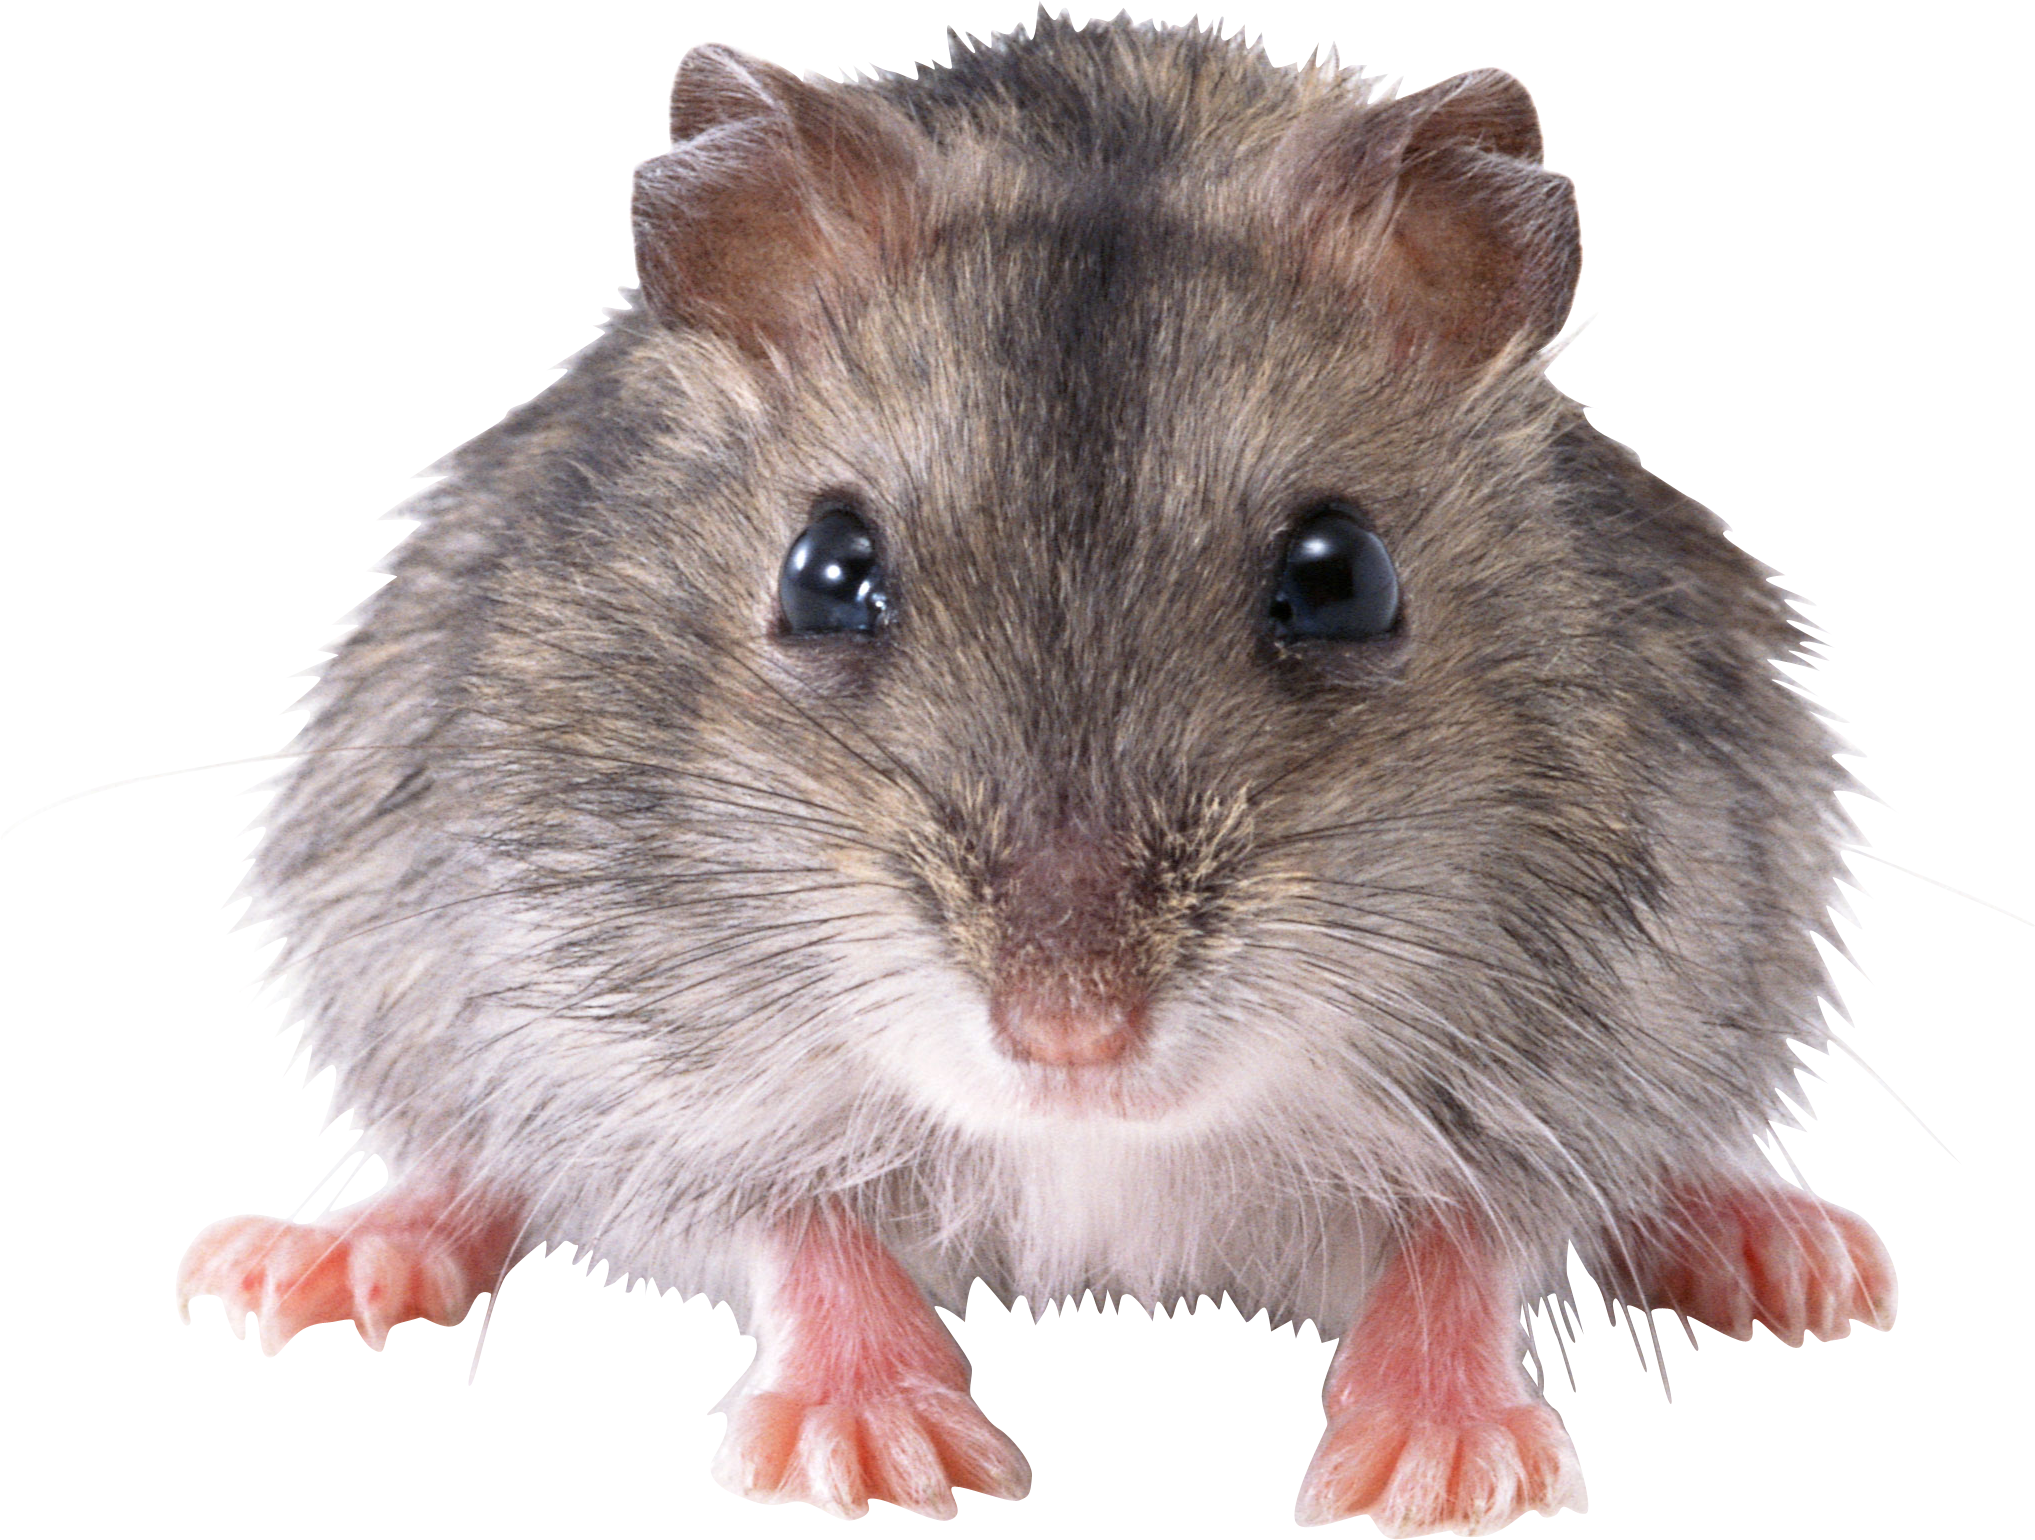 Rat Mouse Png2465 Png 2035 1540 Animals Hamster Mouse Rat